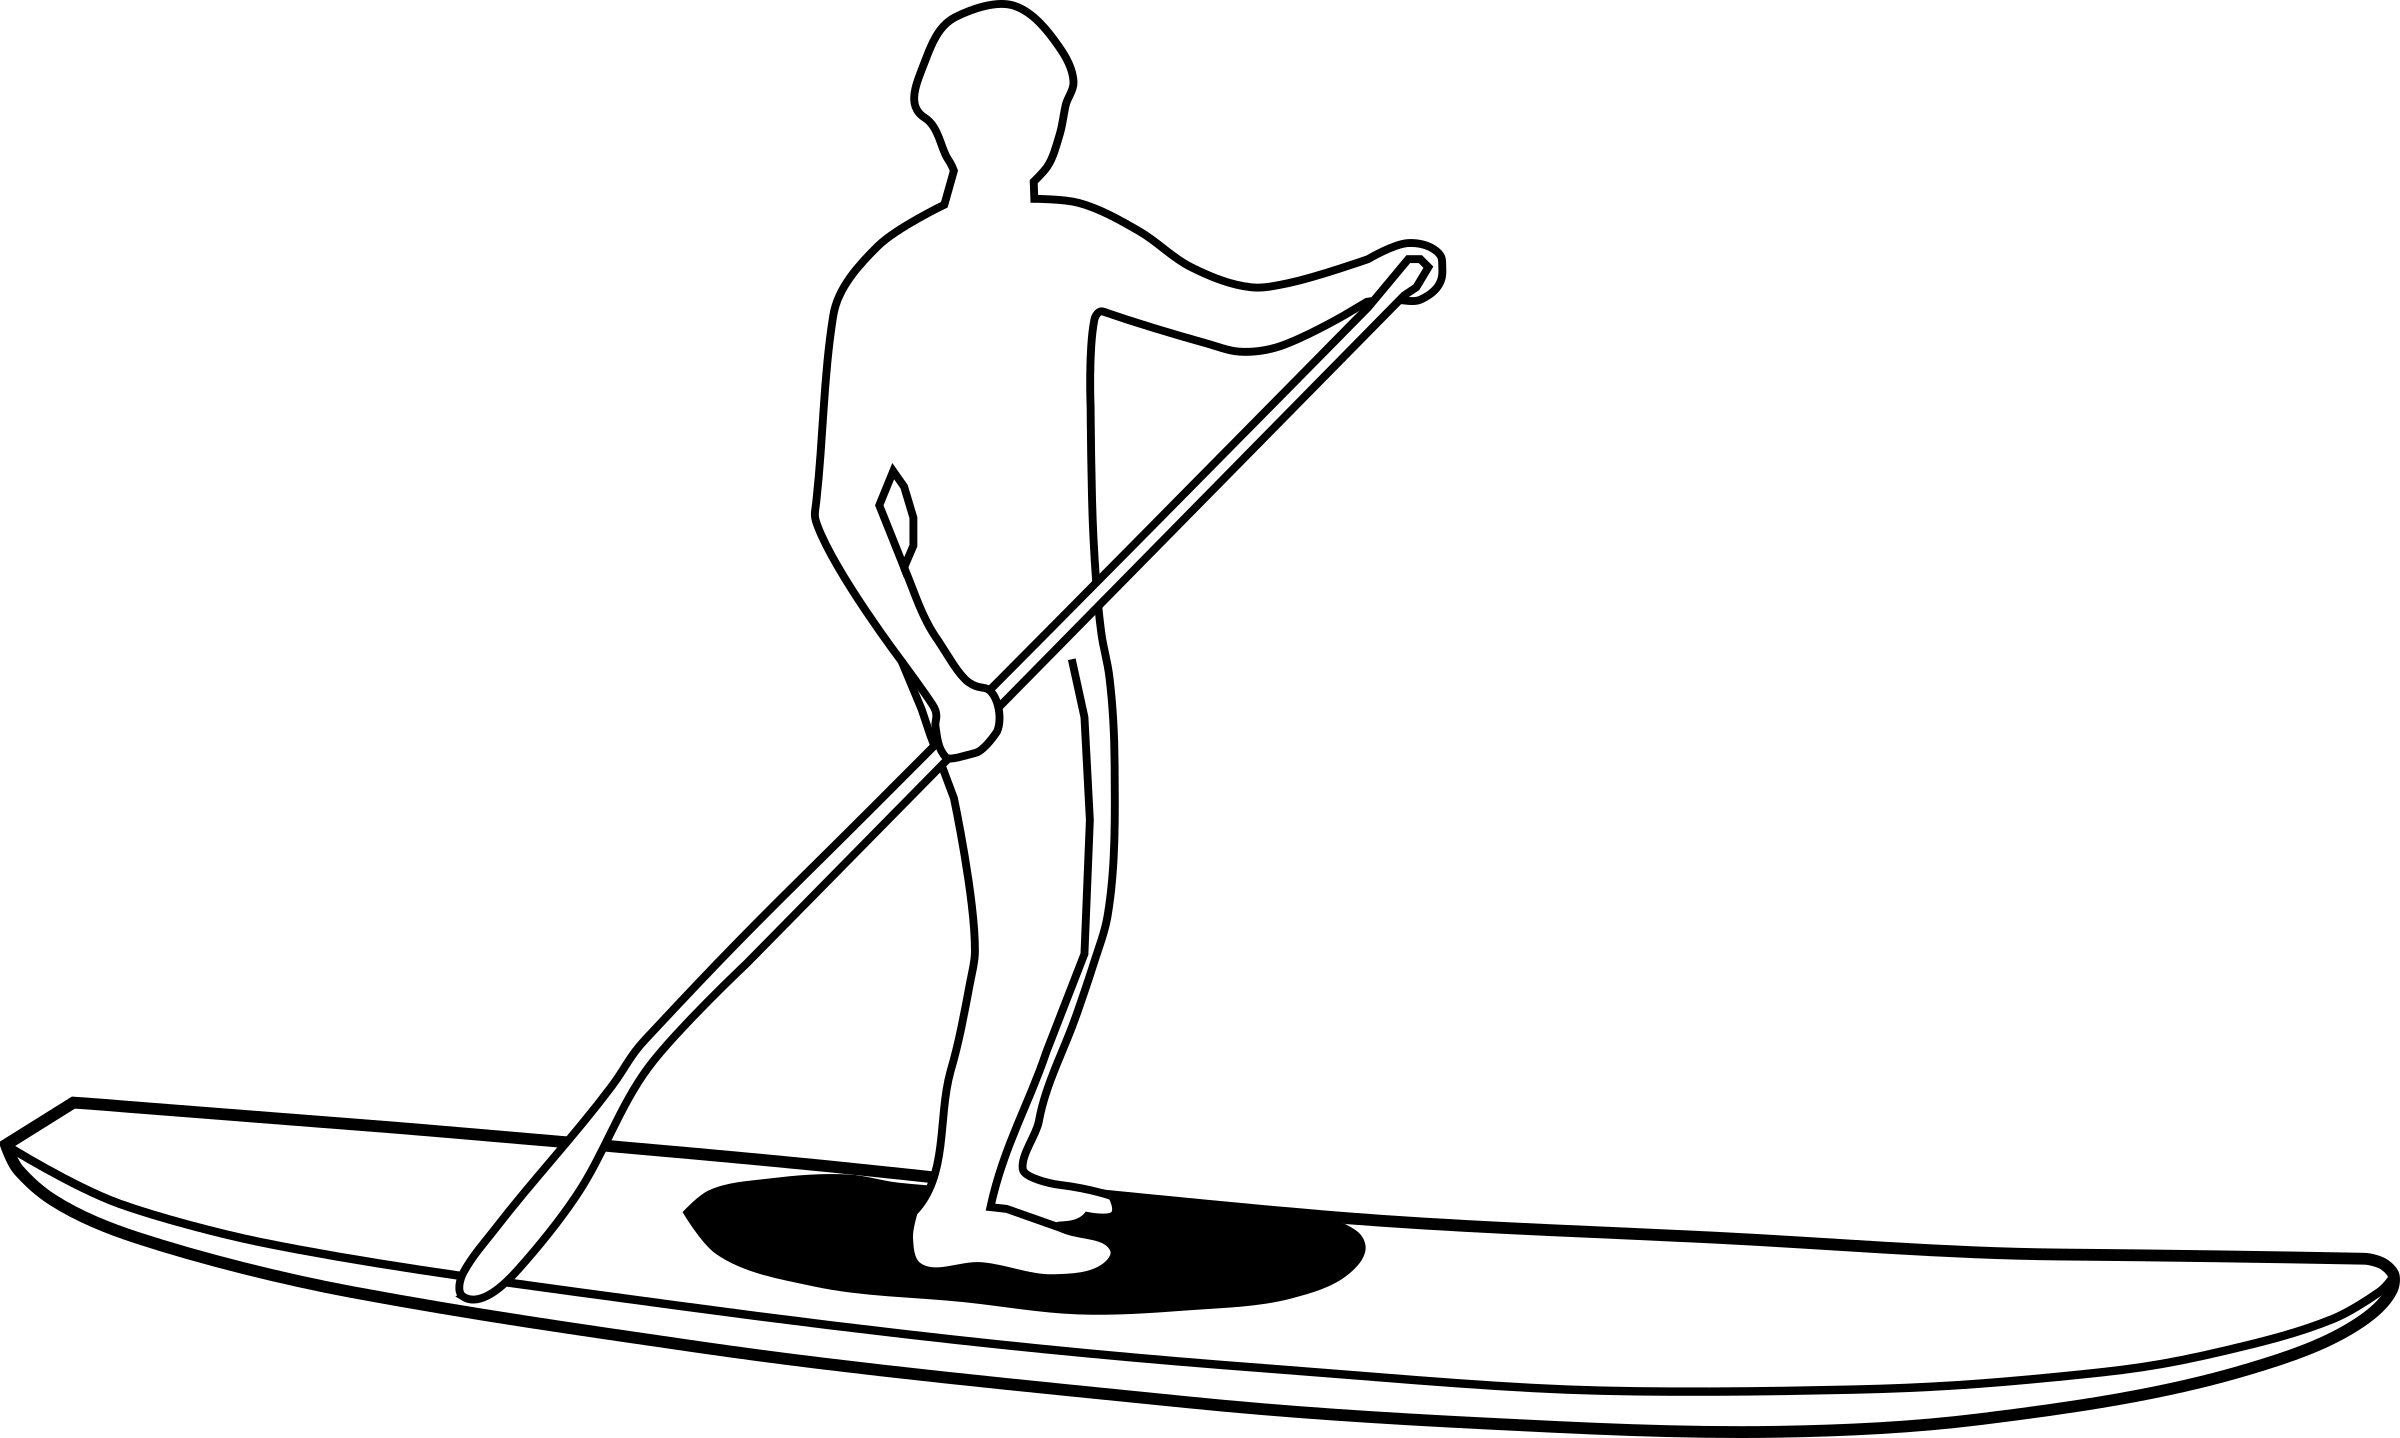 Stand Up Paddleboard Silhouette by Map2Map